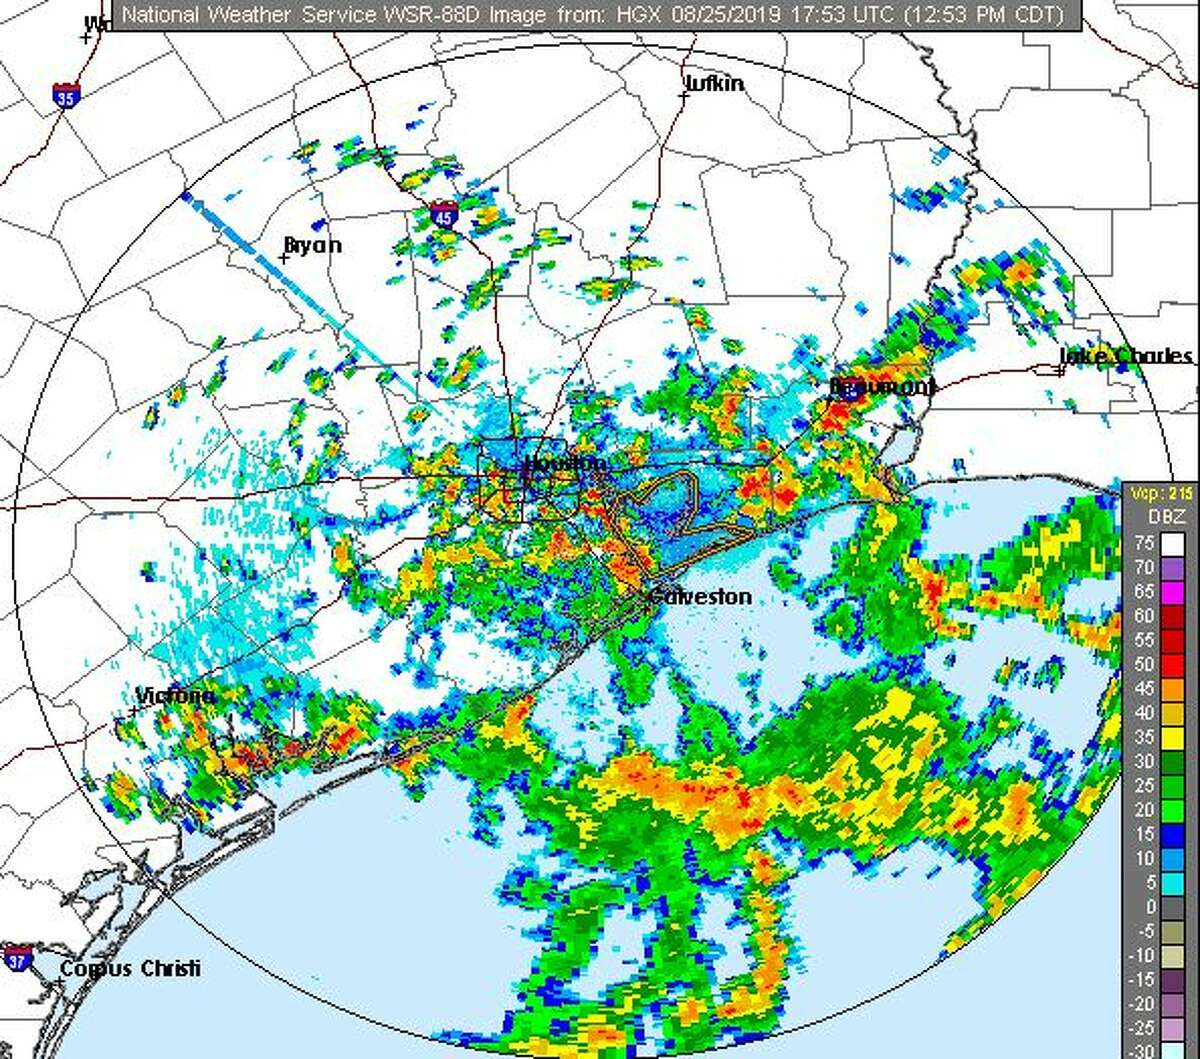 Intermittent rain and storms could impact the entire Houston area until around 10 p.m Sunday